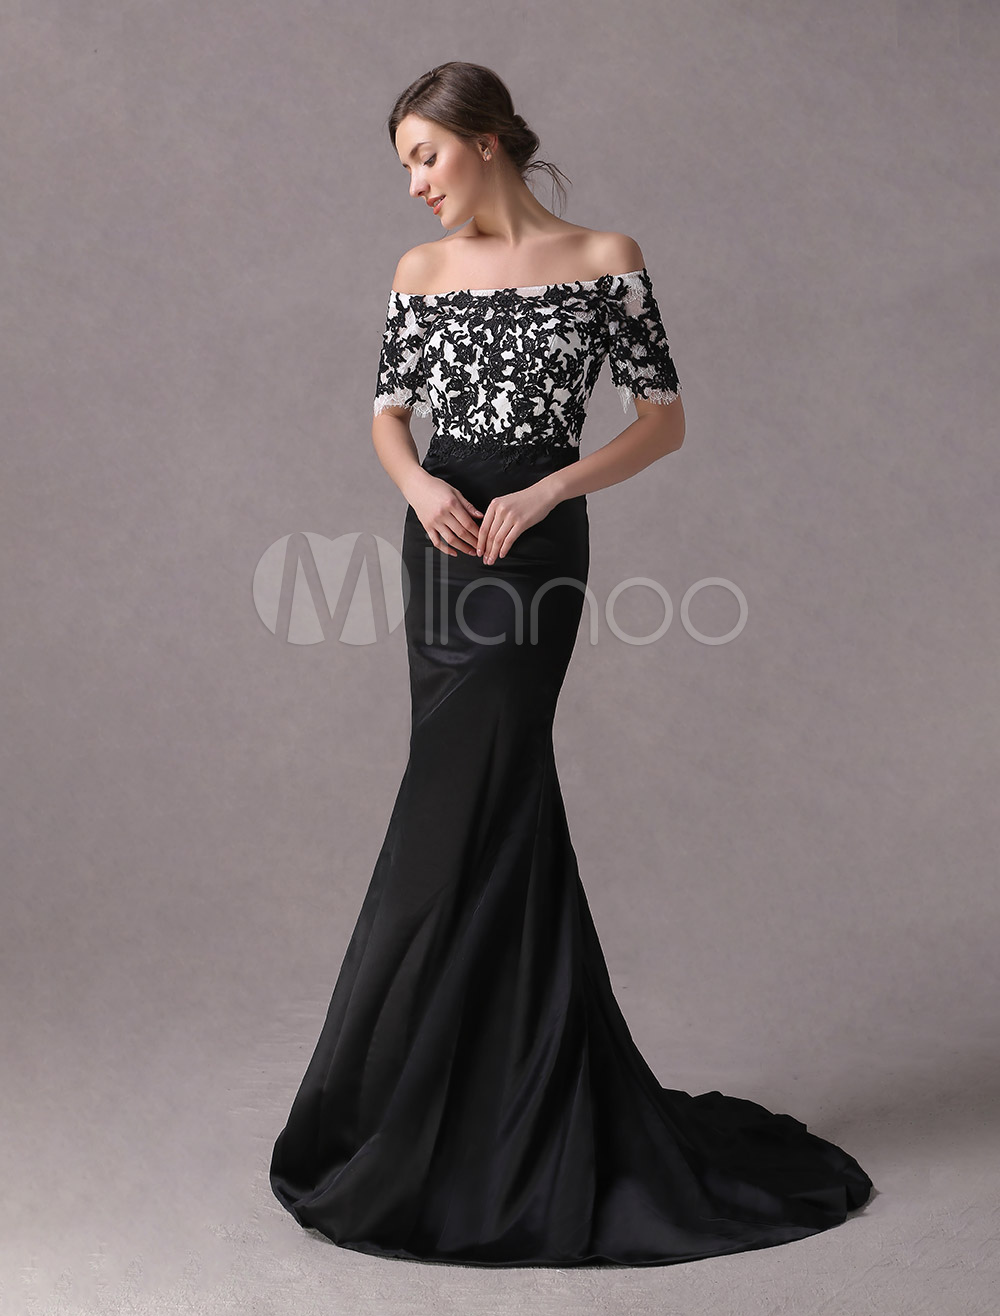 Black Prom Dresses Off The Shoulder Lace Applique Mermaid Evening Dress Satin Half Sleeve Formal Gowns With Train